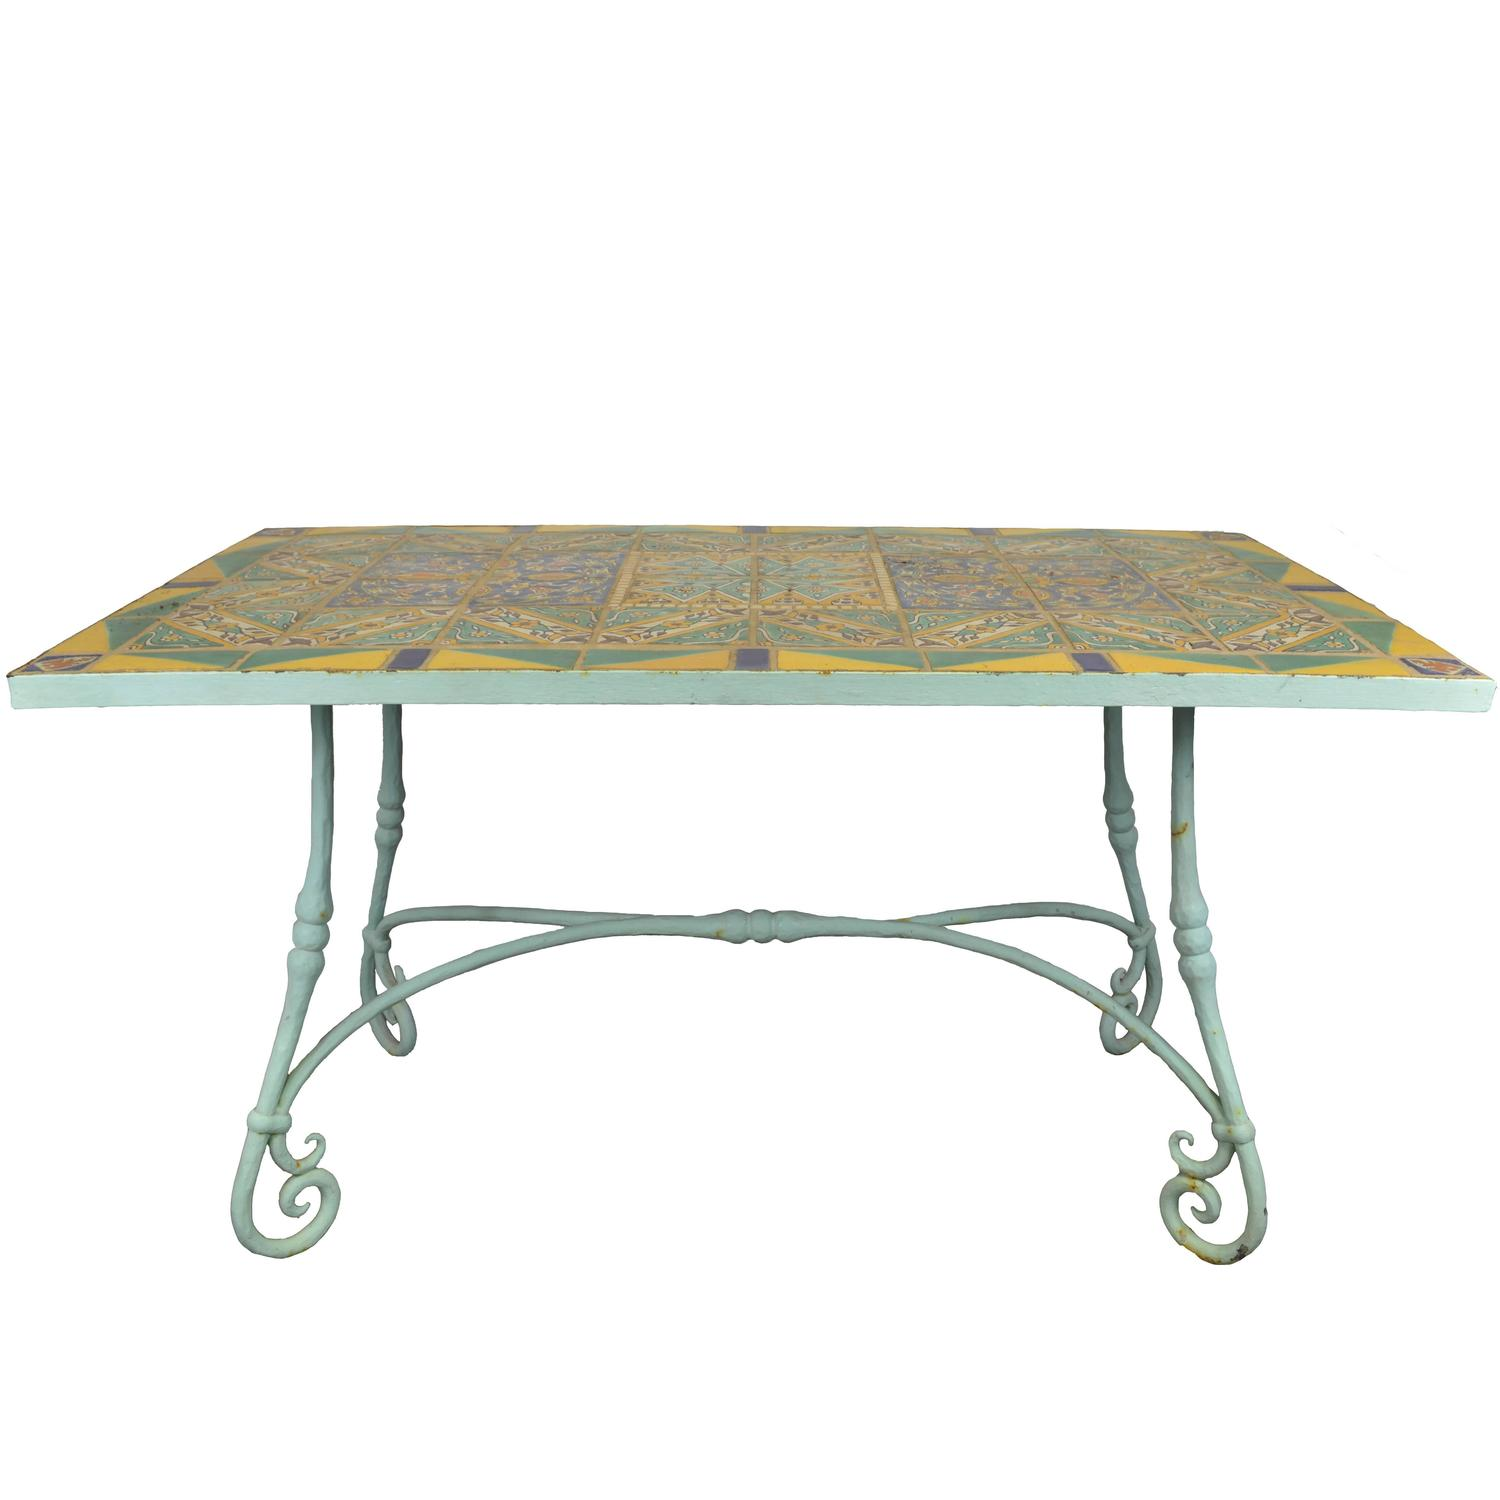 Rare Original D M Tile Table With Hand Wrought Iron Base For Sale At 1stdibs